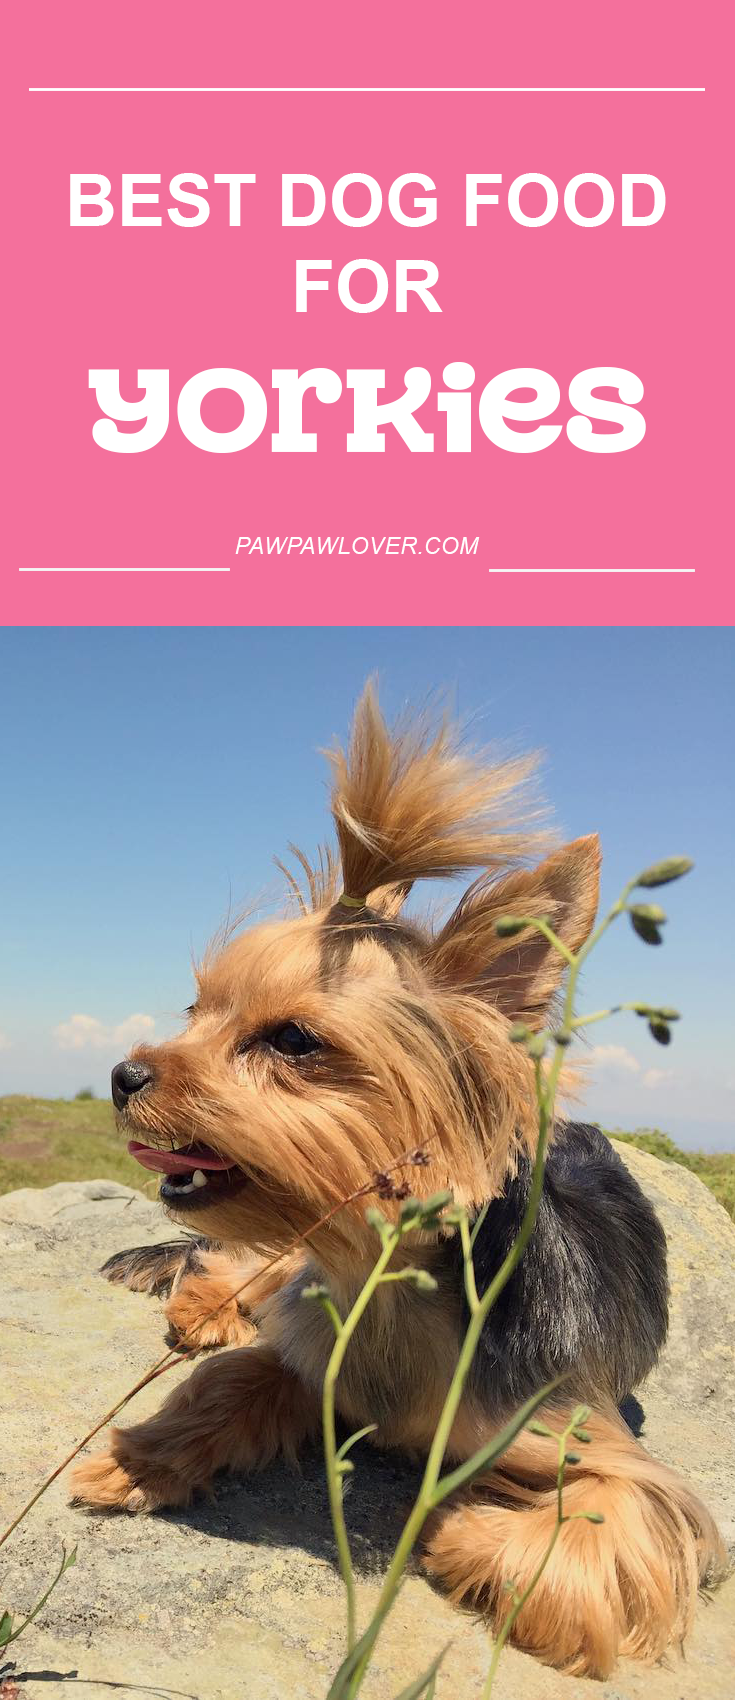 5 Best Dog Food For Yorkies Teacup Puppy 2019 Brands Dog Food Recipes Best Dog Food Healthy Dog Food Recipes